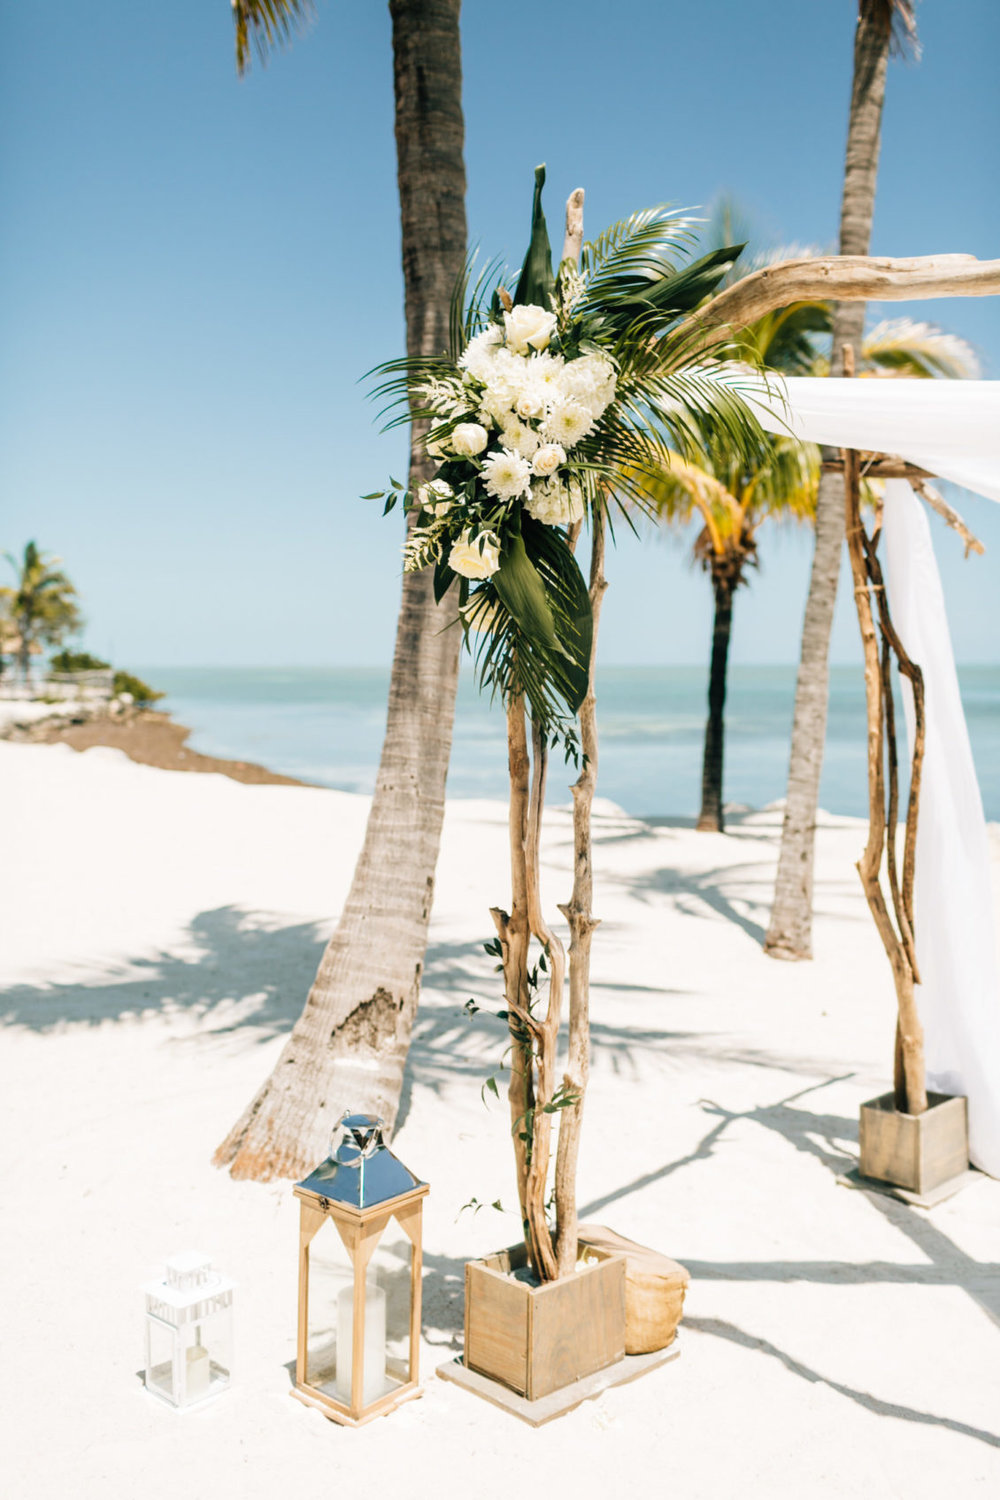 finding_light_photography-postcard_inn_holiday_isle_wedding_photography-islamorada_wedding_photographer-010-1130x1695.jpg